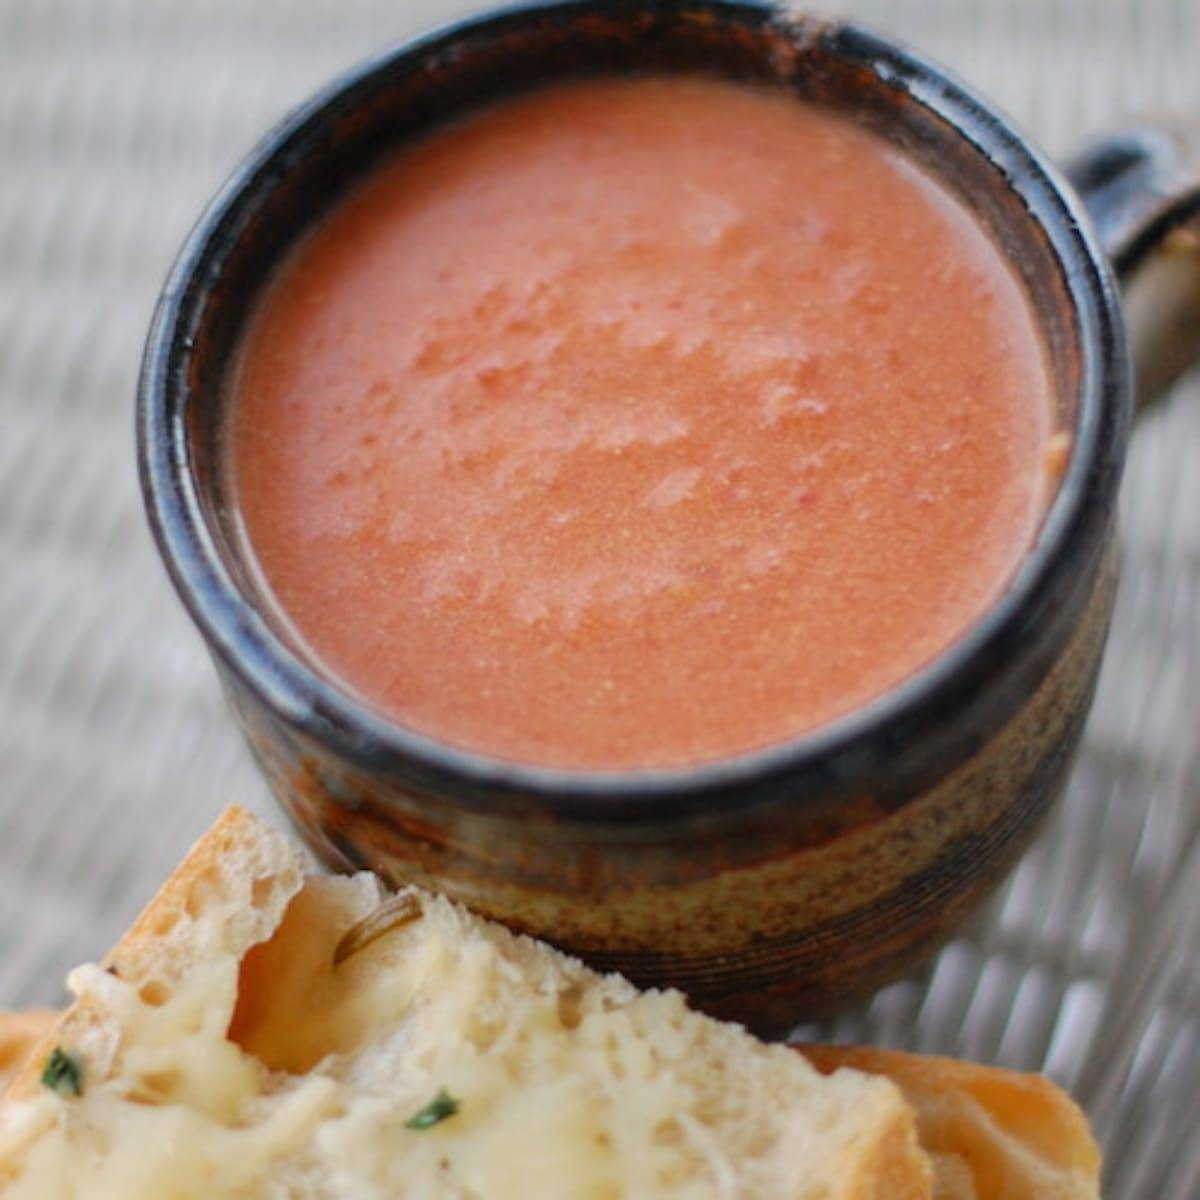 Creamy tomato balsamic soup in a mug next to a piece of bread.